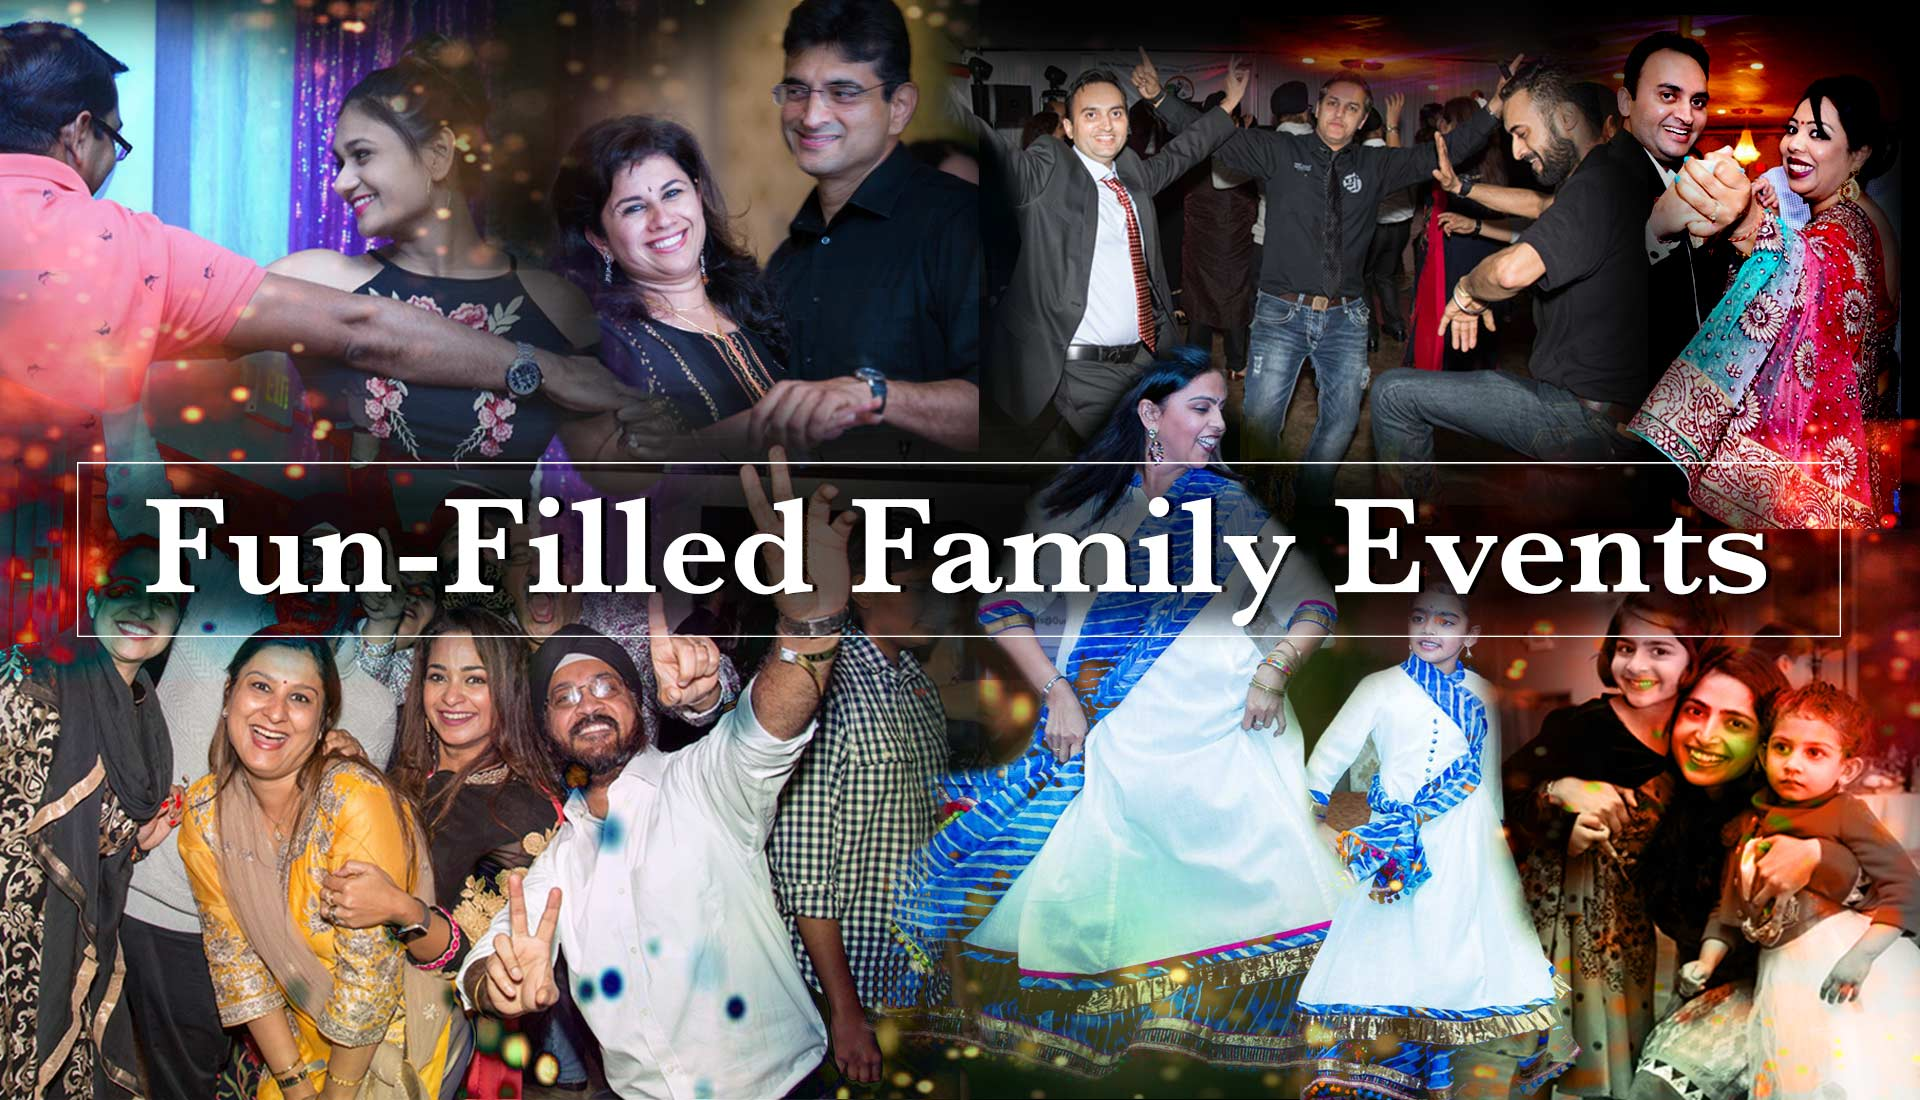 Our Indian Culture organizes Fun-Filled-Family-Events in Irvine, Anaheim, Orange County, Los Angeles, San Diego and Riverside, CA, USA